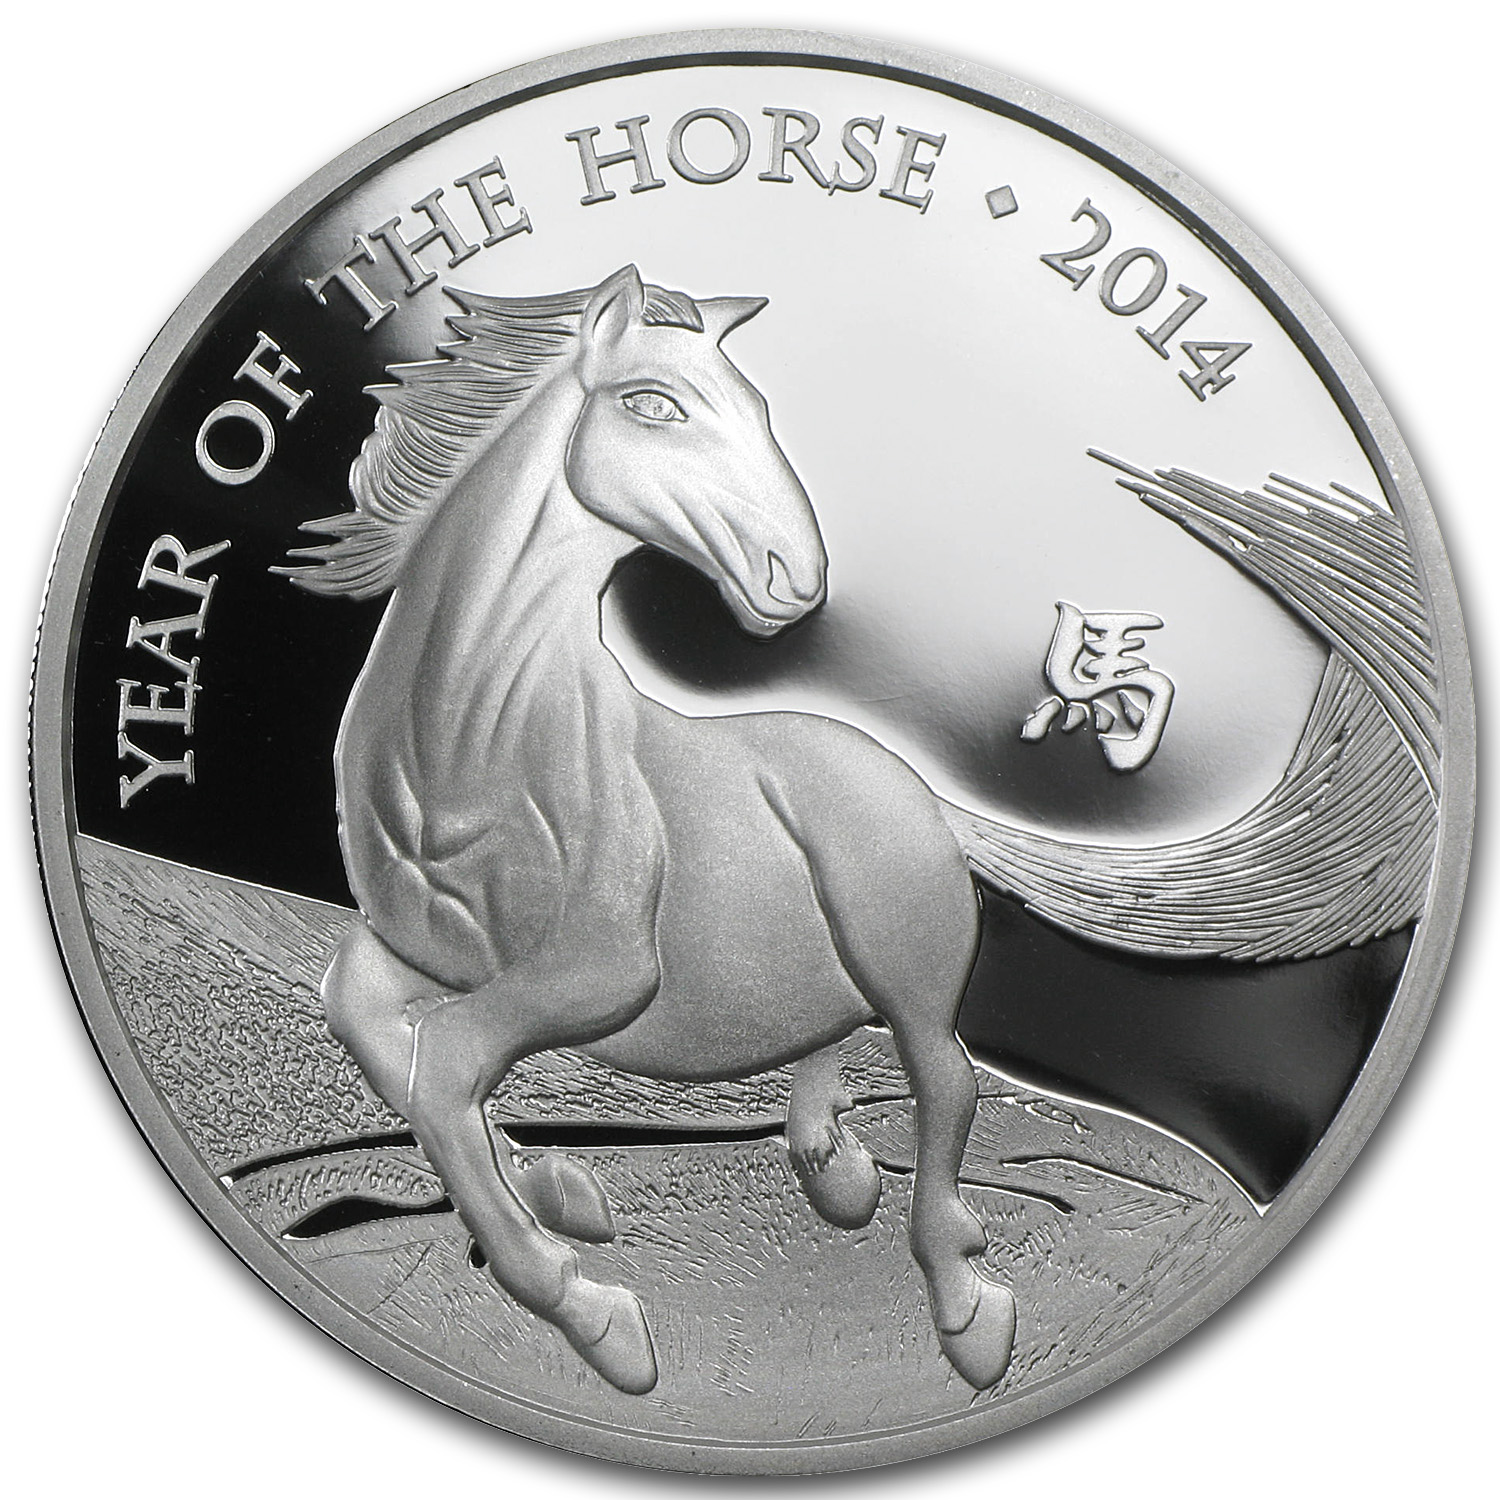 2014 Great Britain 1 oz Silver Proof Year of the Horse (Box&Coa)